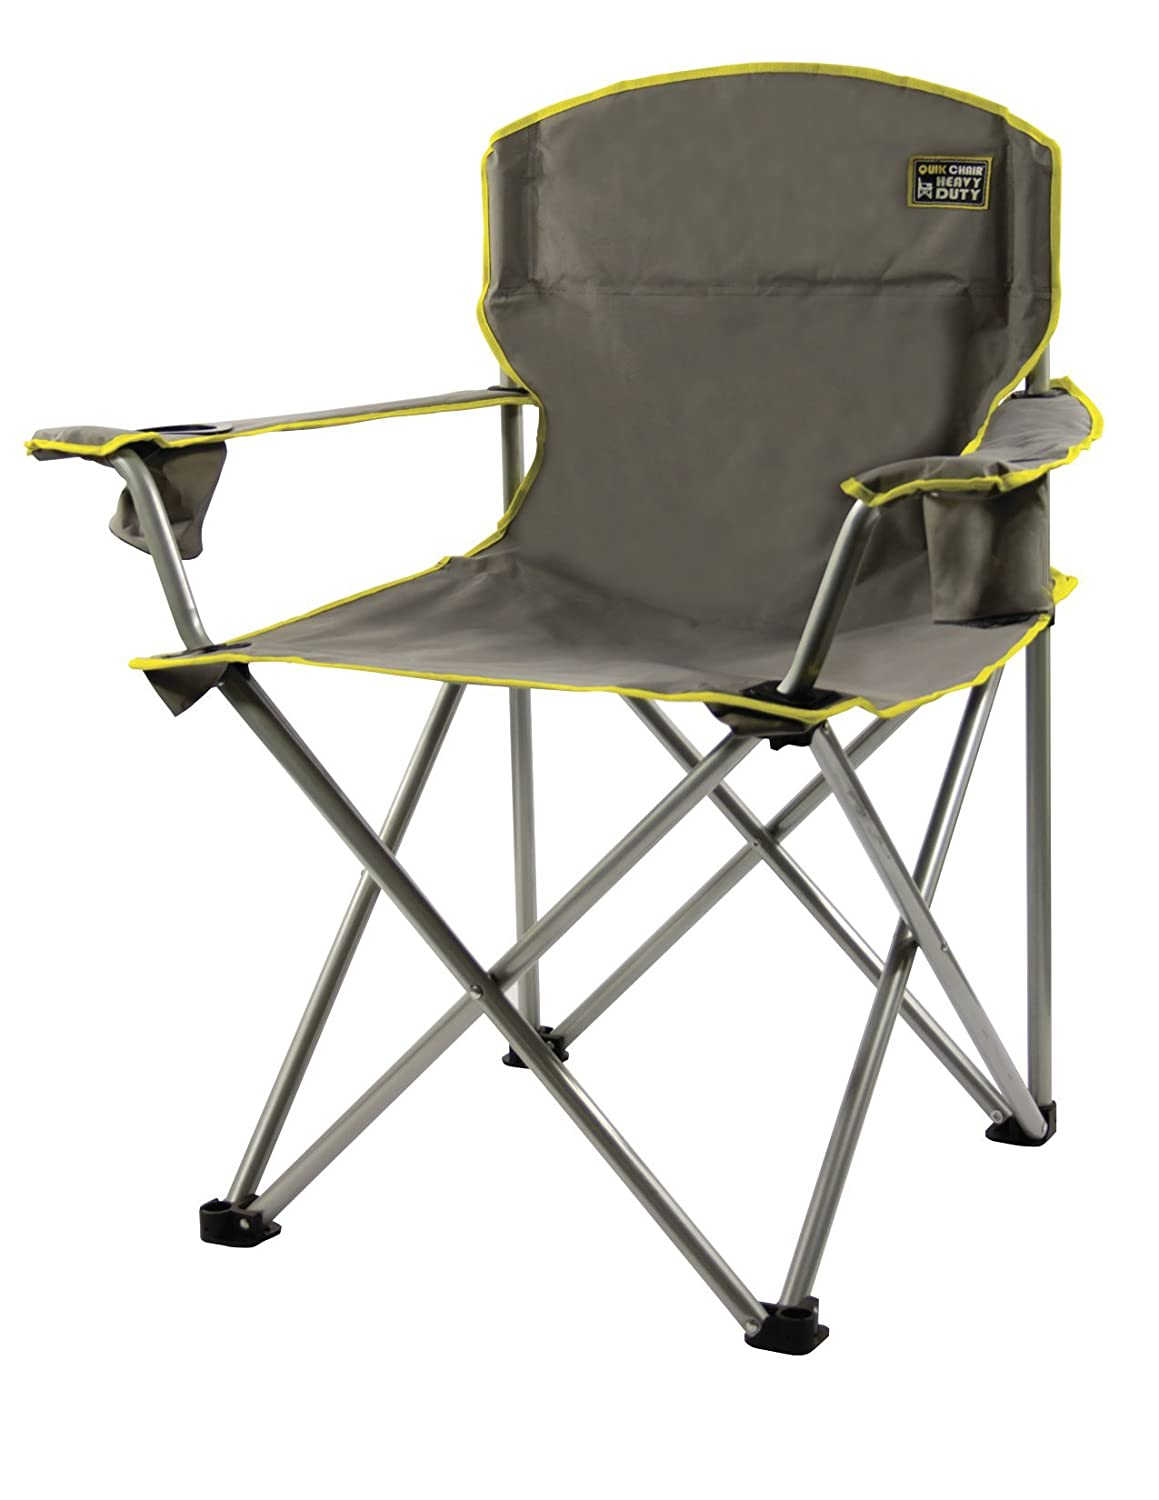 Best Camp Chair What Are The Best Oversized Beach Chairs For Heavy People